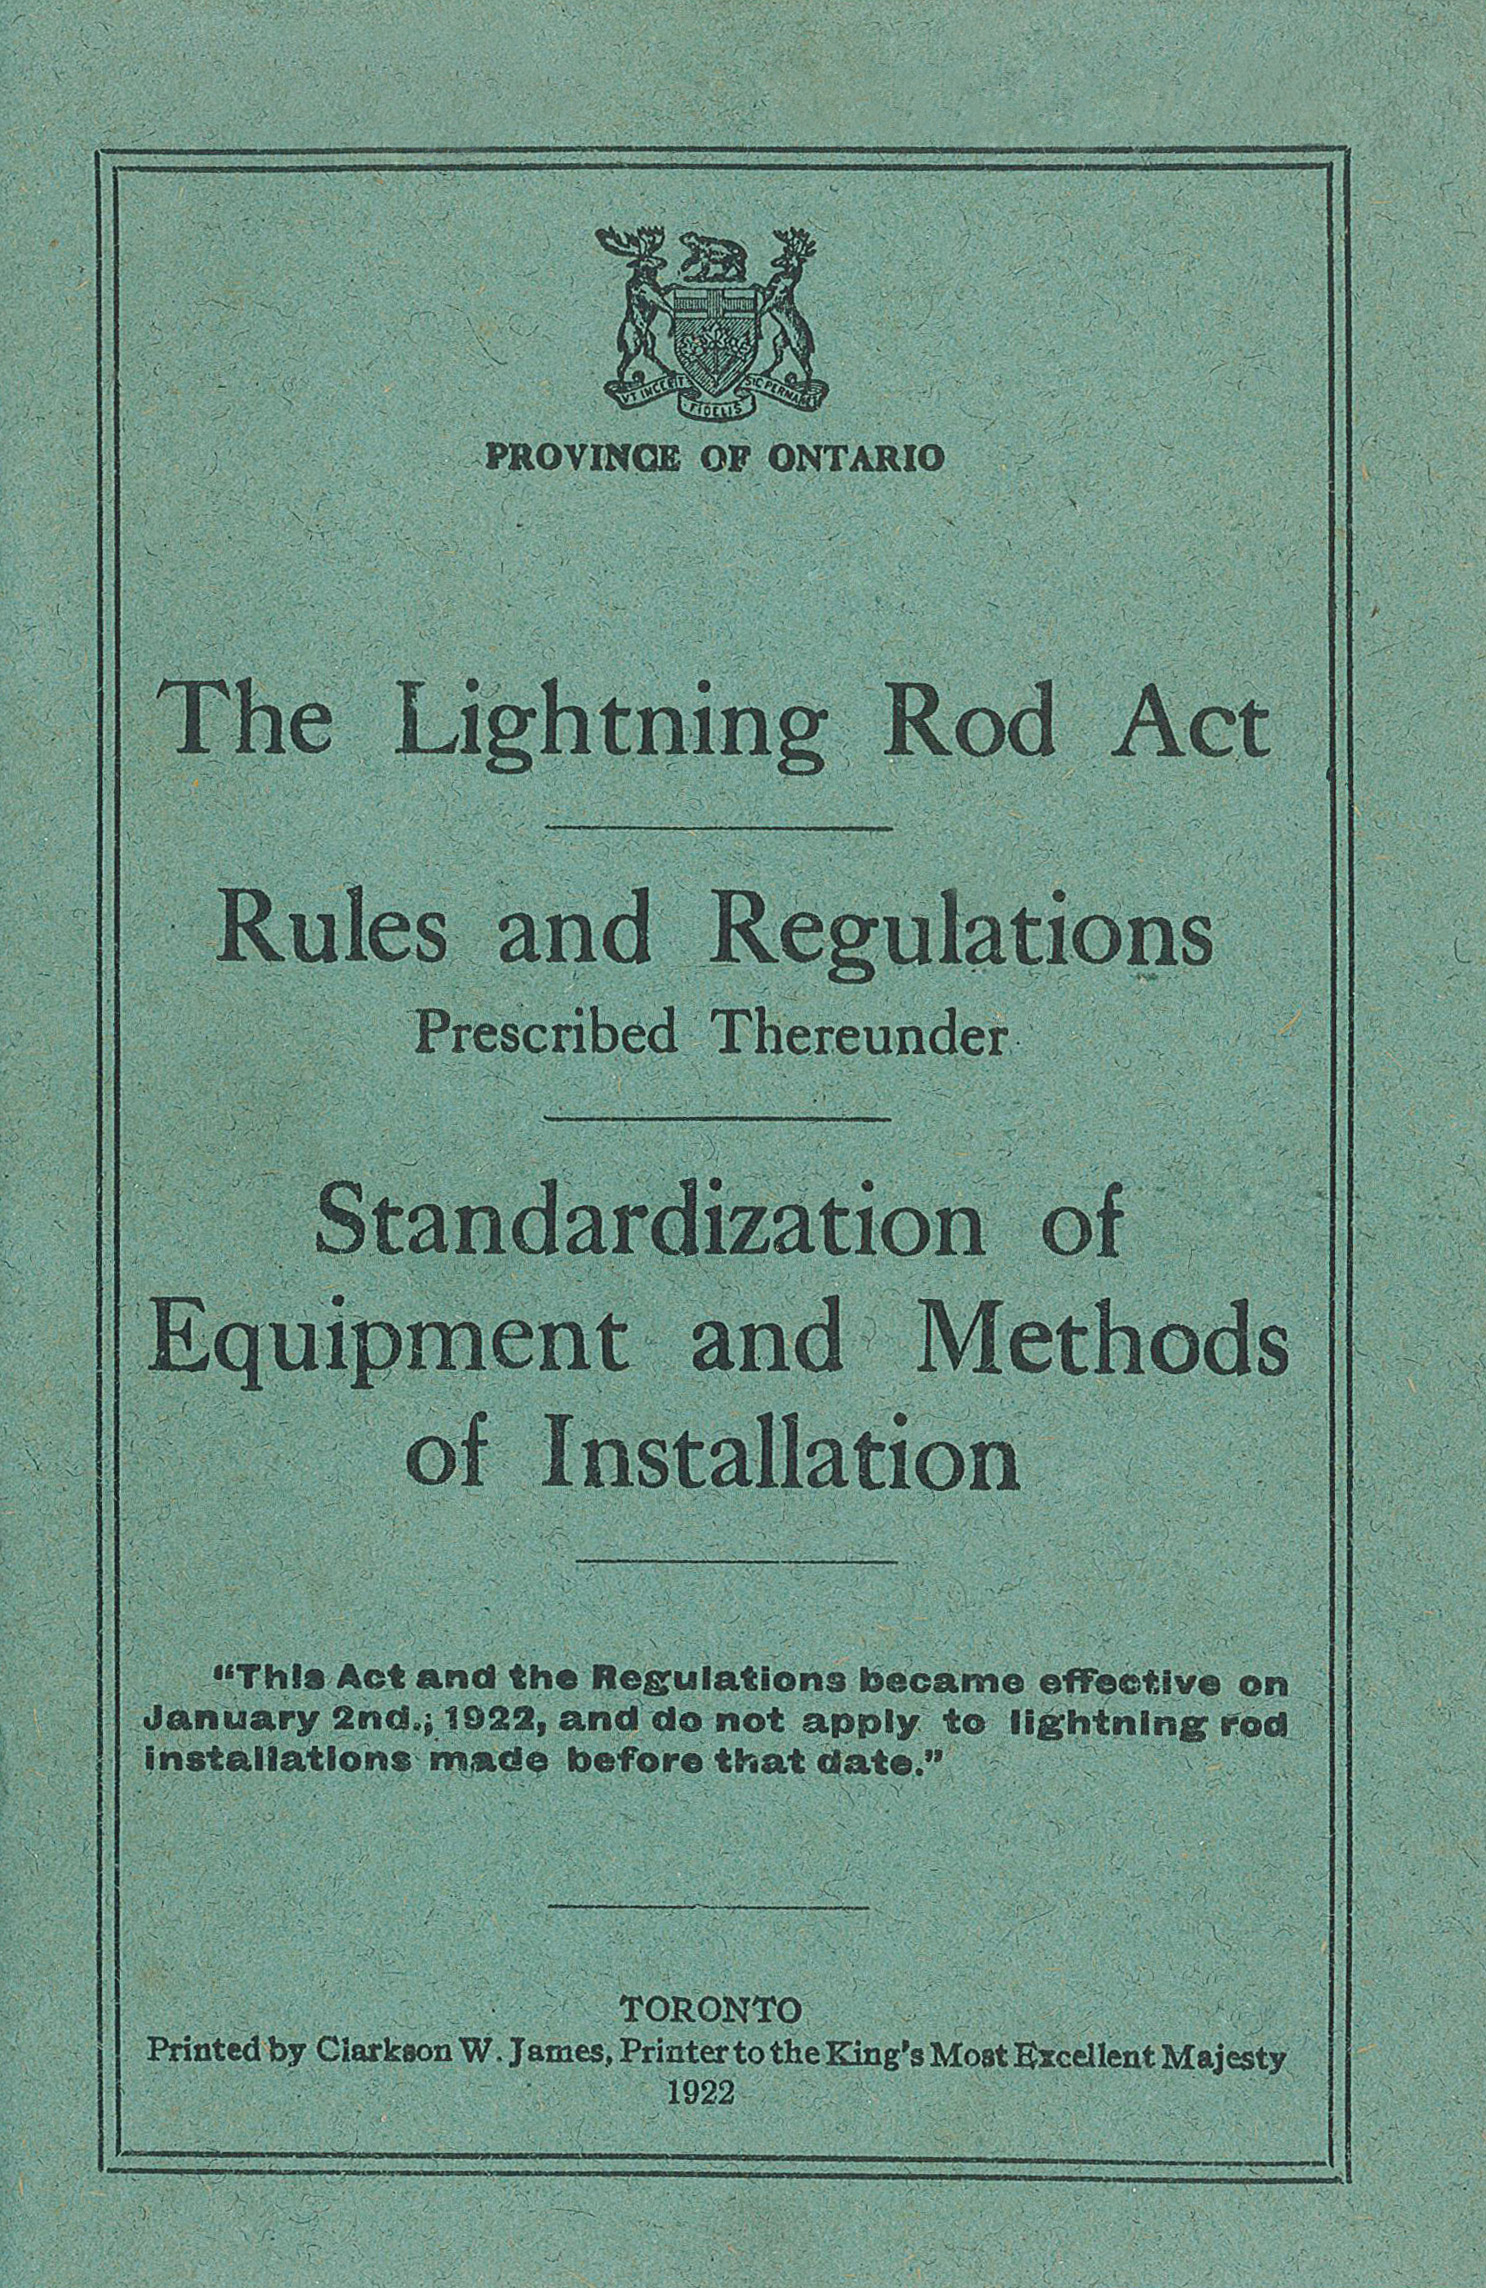 1922 Lightning Protection Standard Act